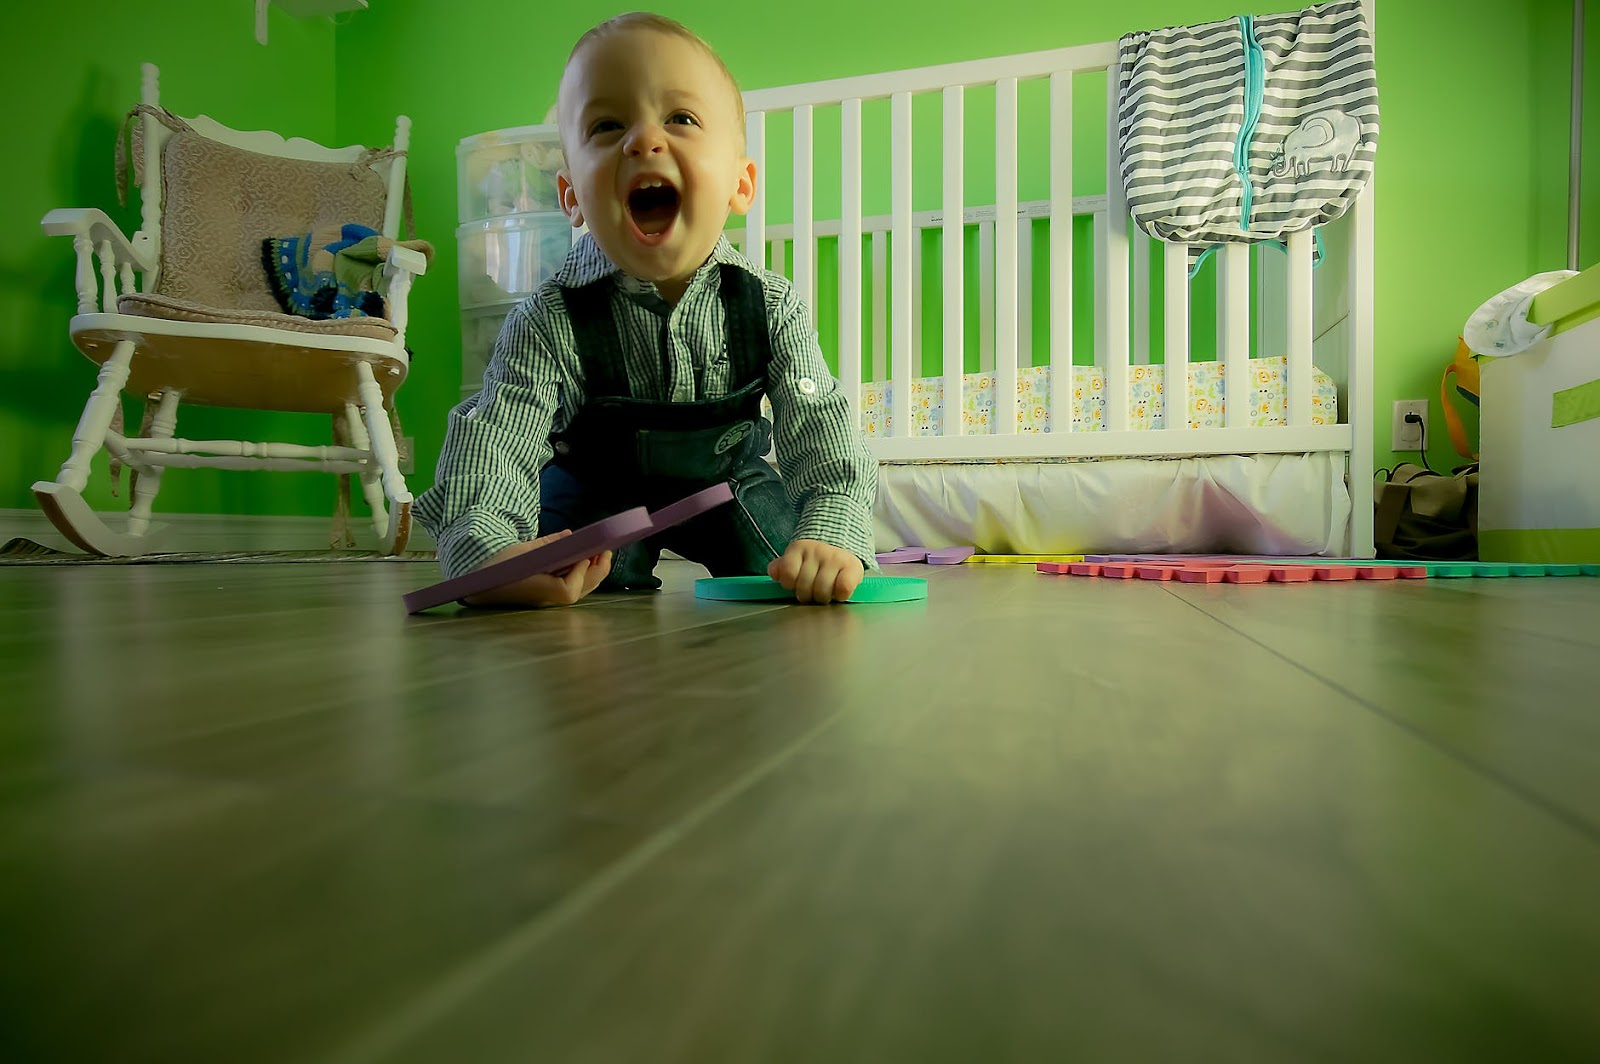 child-proofing your home - bedroom